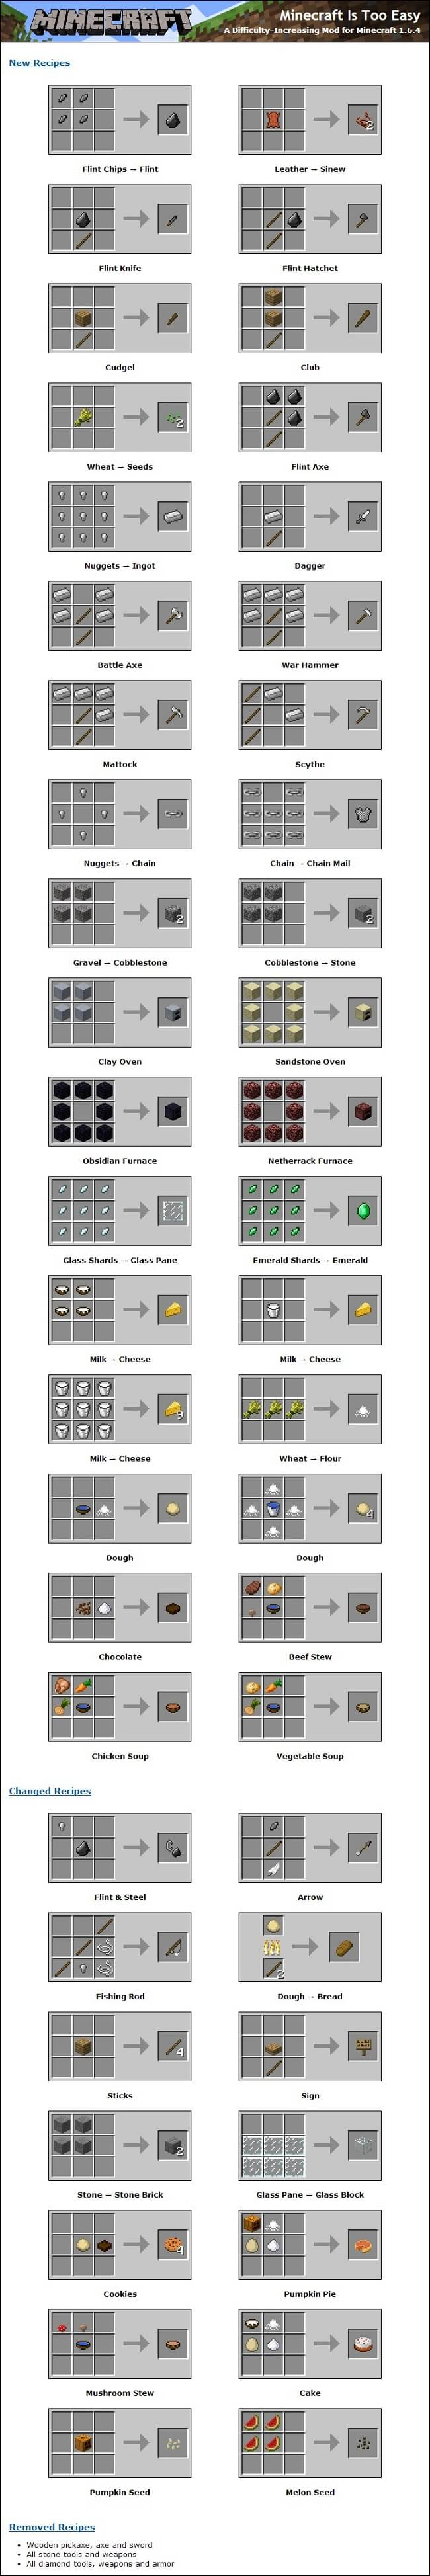 Minecraft-Is-Too-Easy-Mod-2.jpg